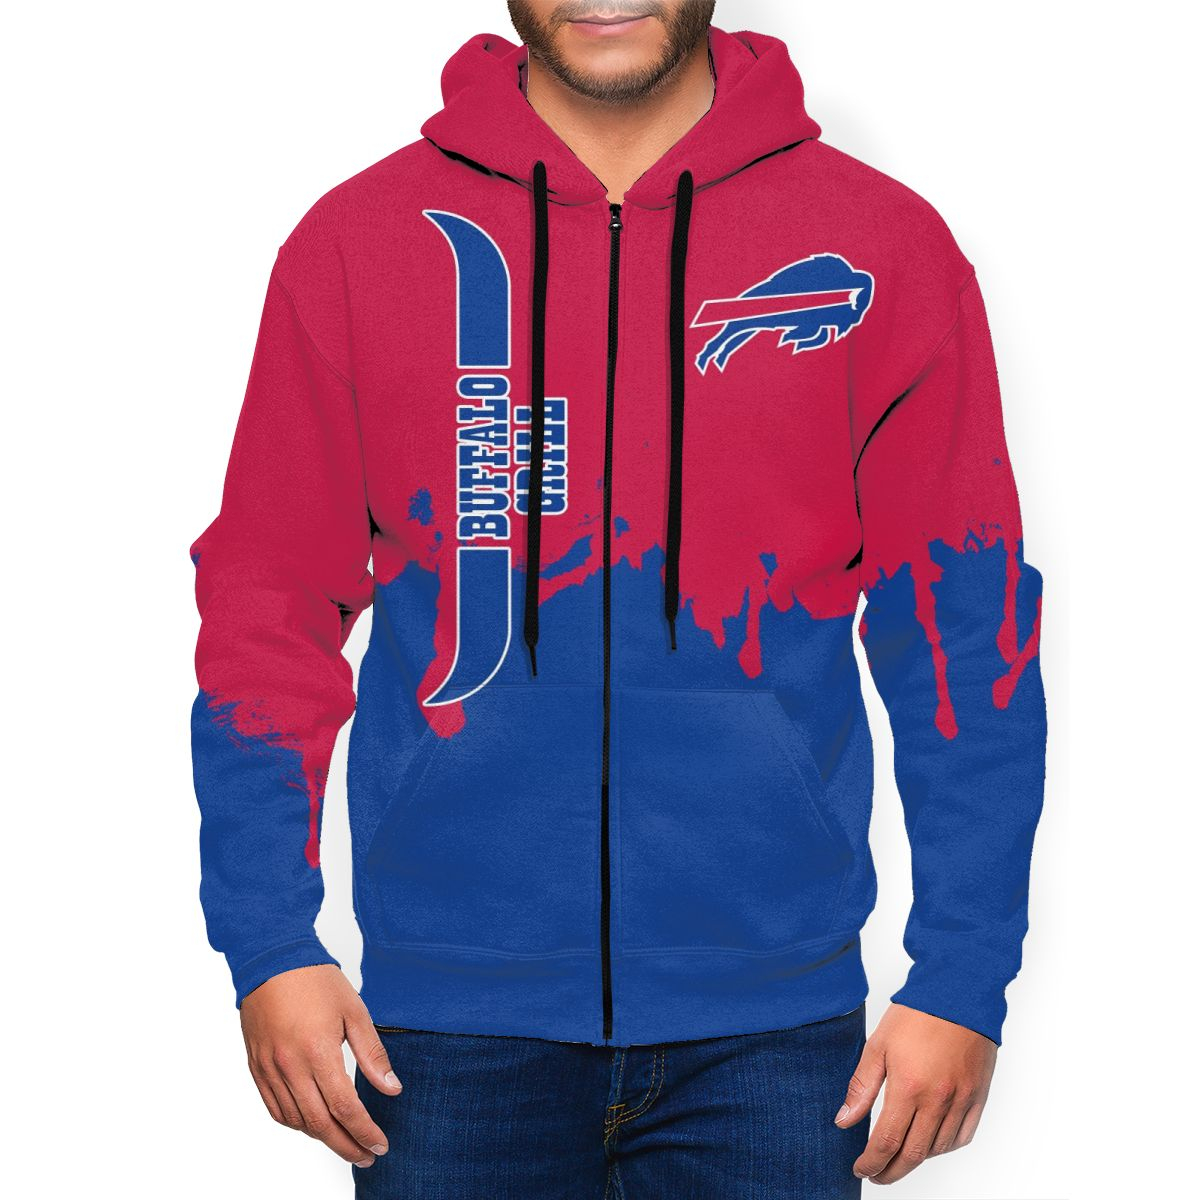 Bills Team Men's Zip Hooded Sweatshirt